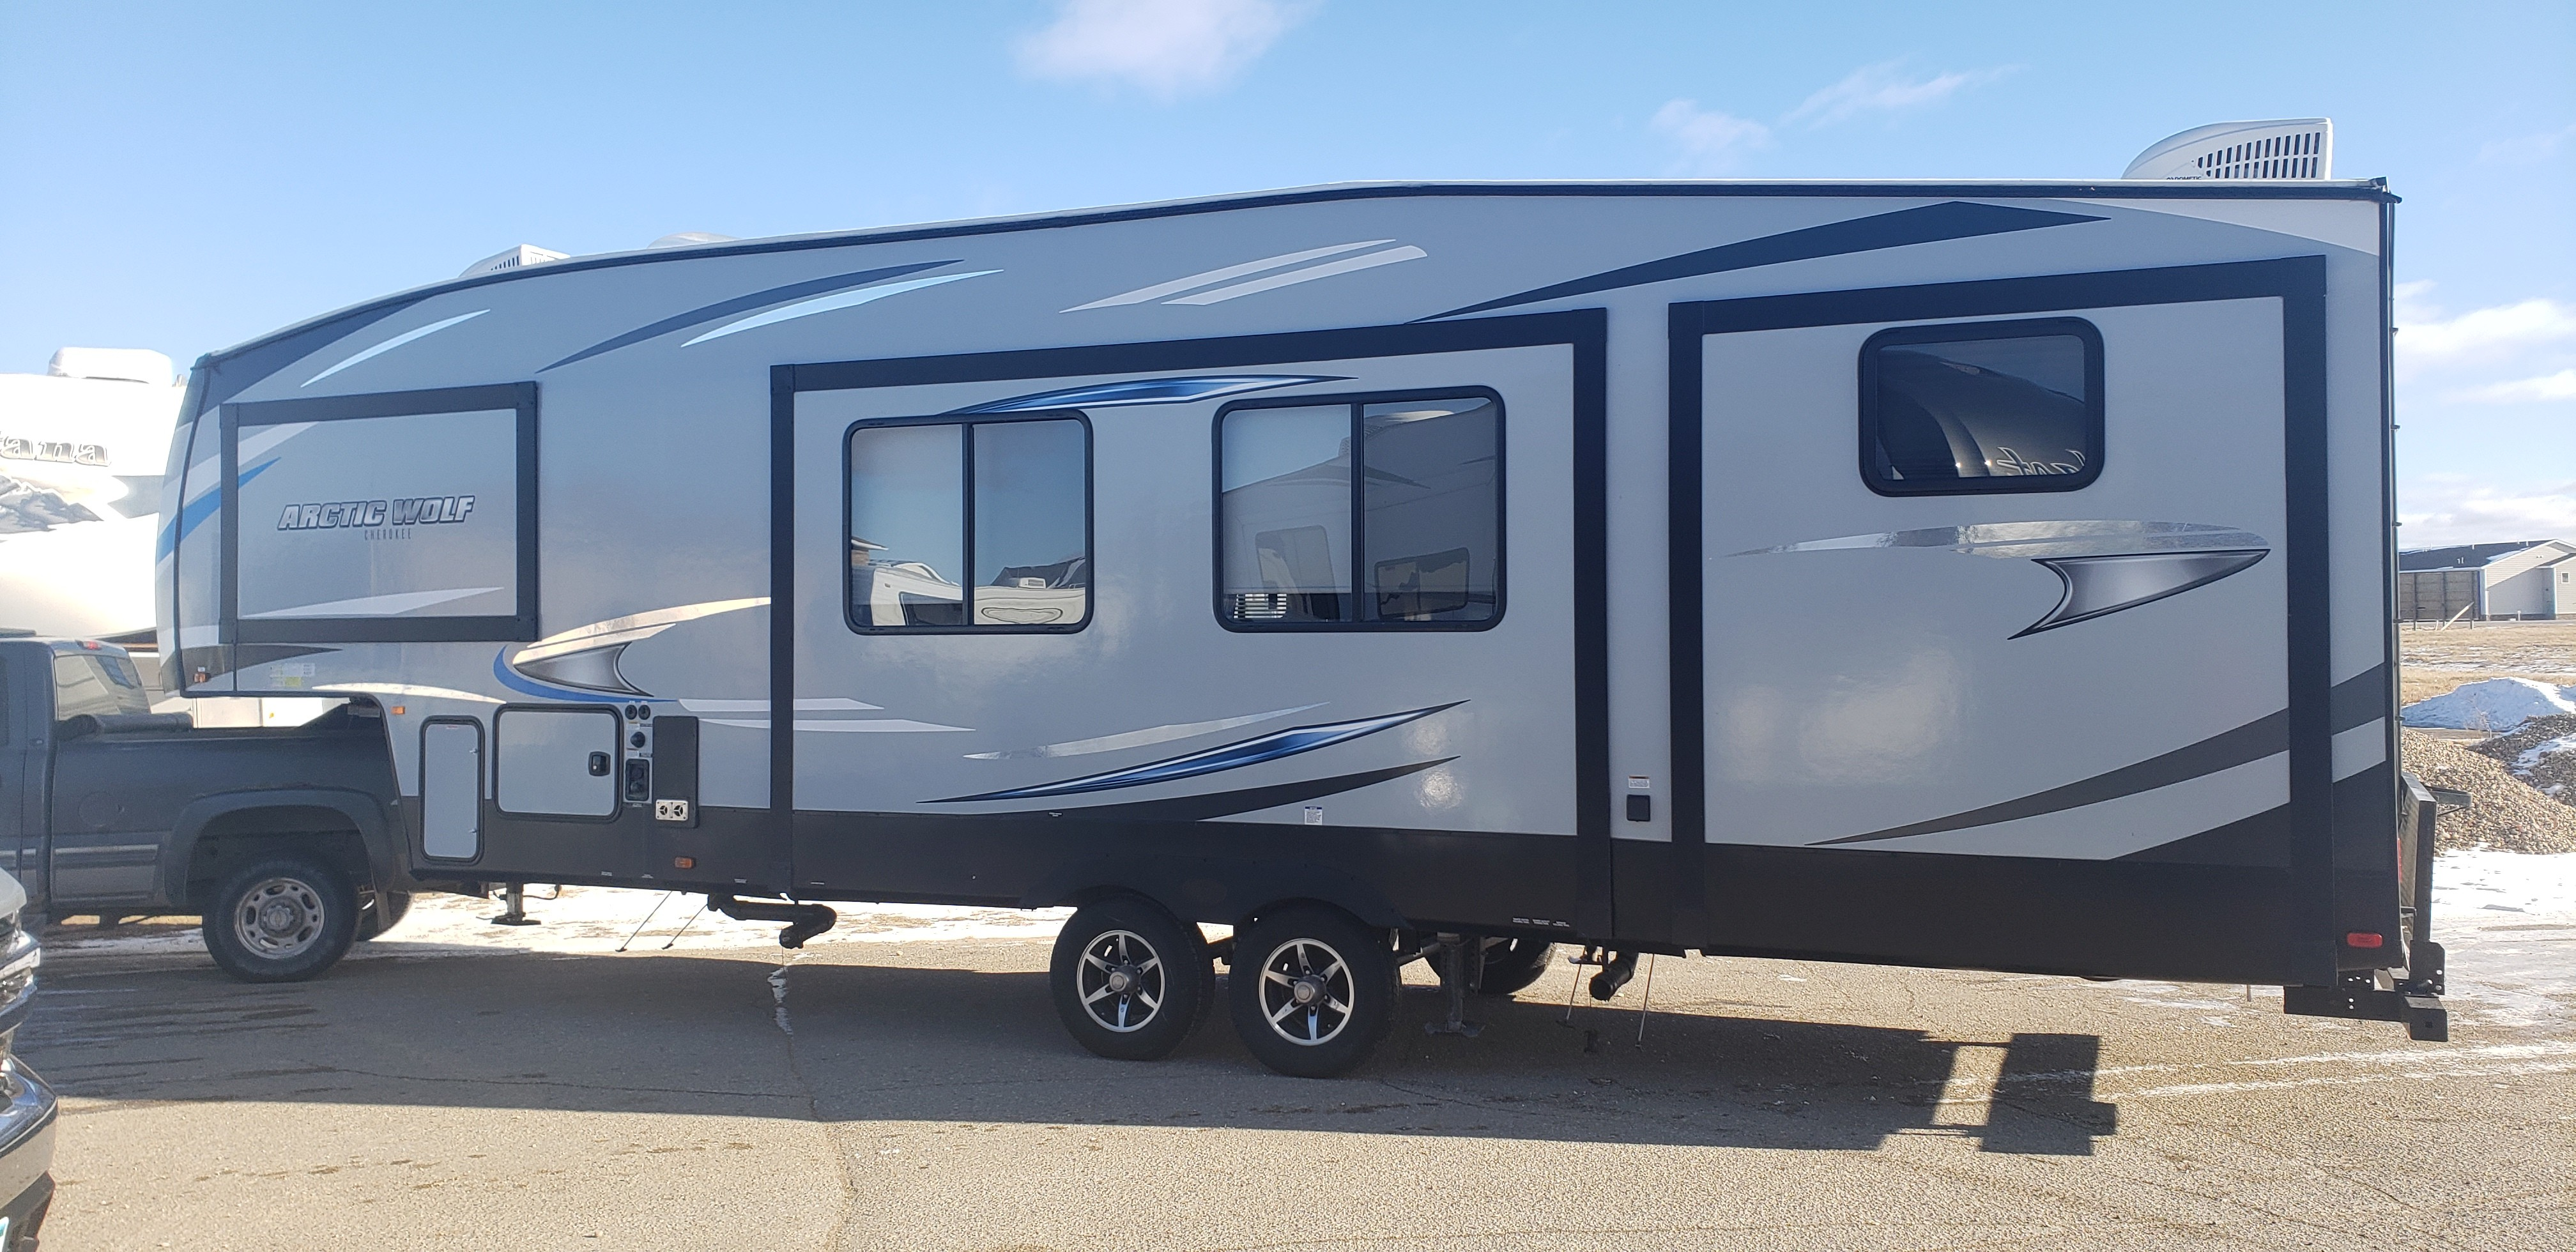 Used, 2019, Cherokee Arctic Wolf, 315TBHS, Fifth Wheels